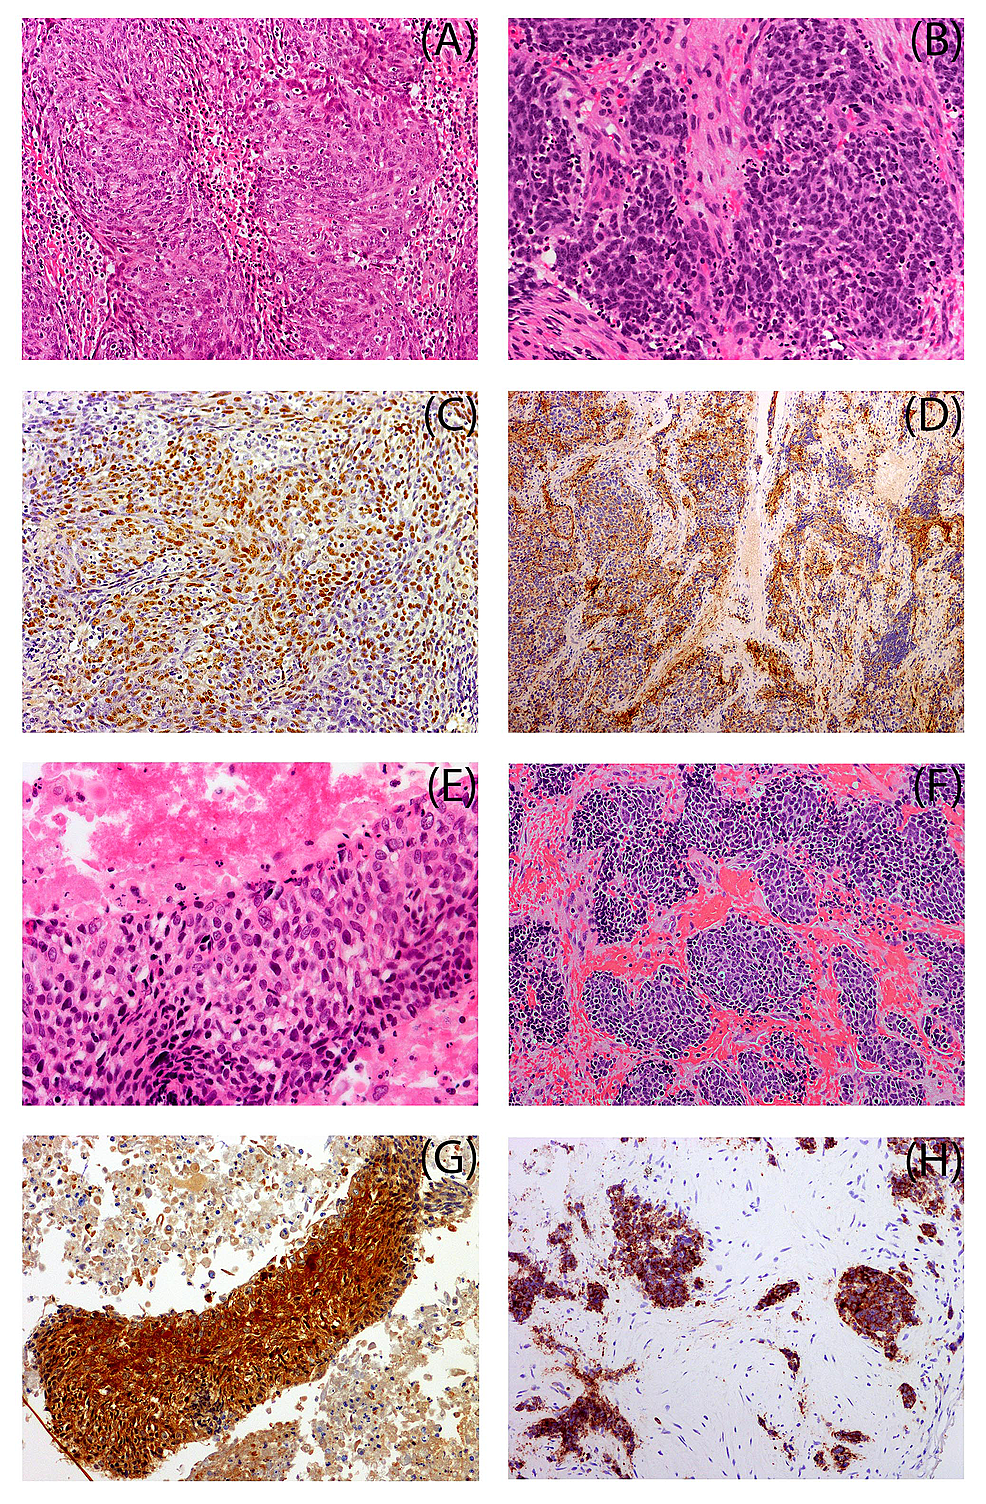 Immunohistochemical-Stains-of-Primary-and-Secondary-Malignancies-of-Two-Cases